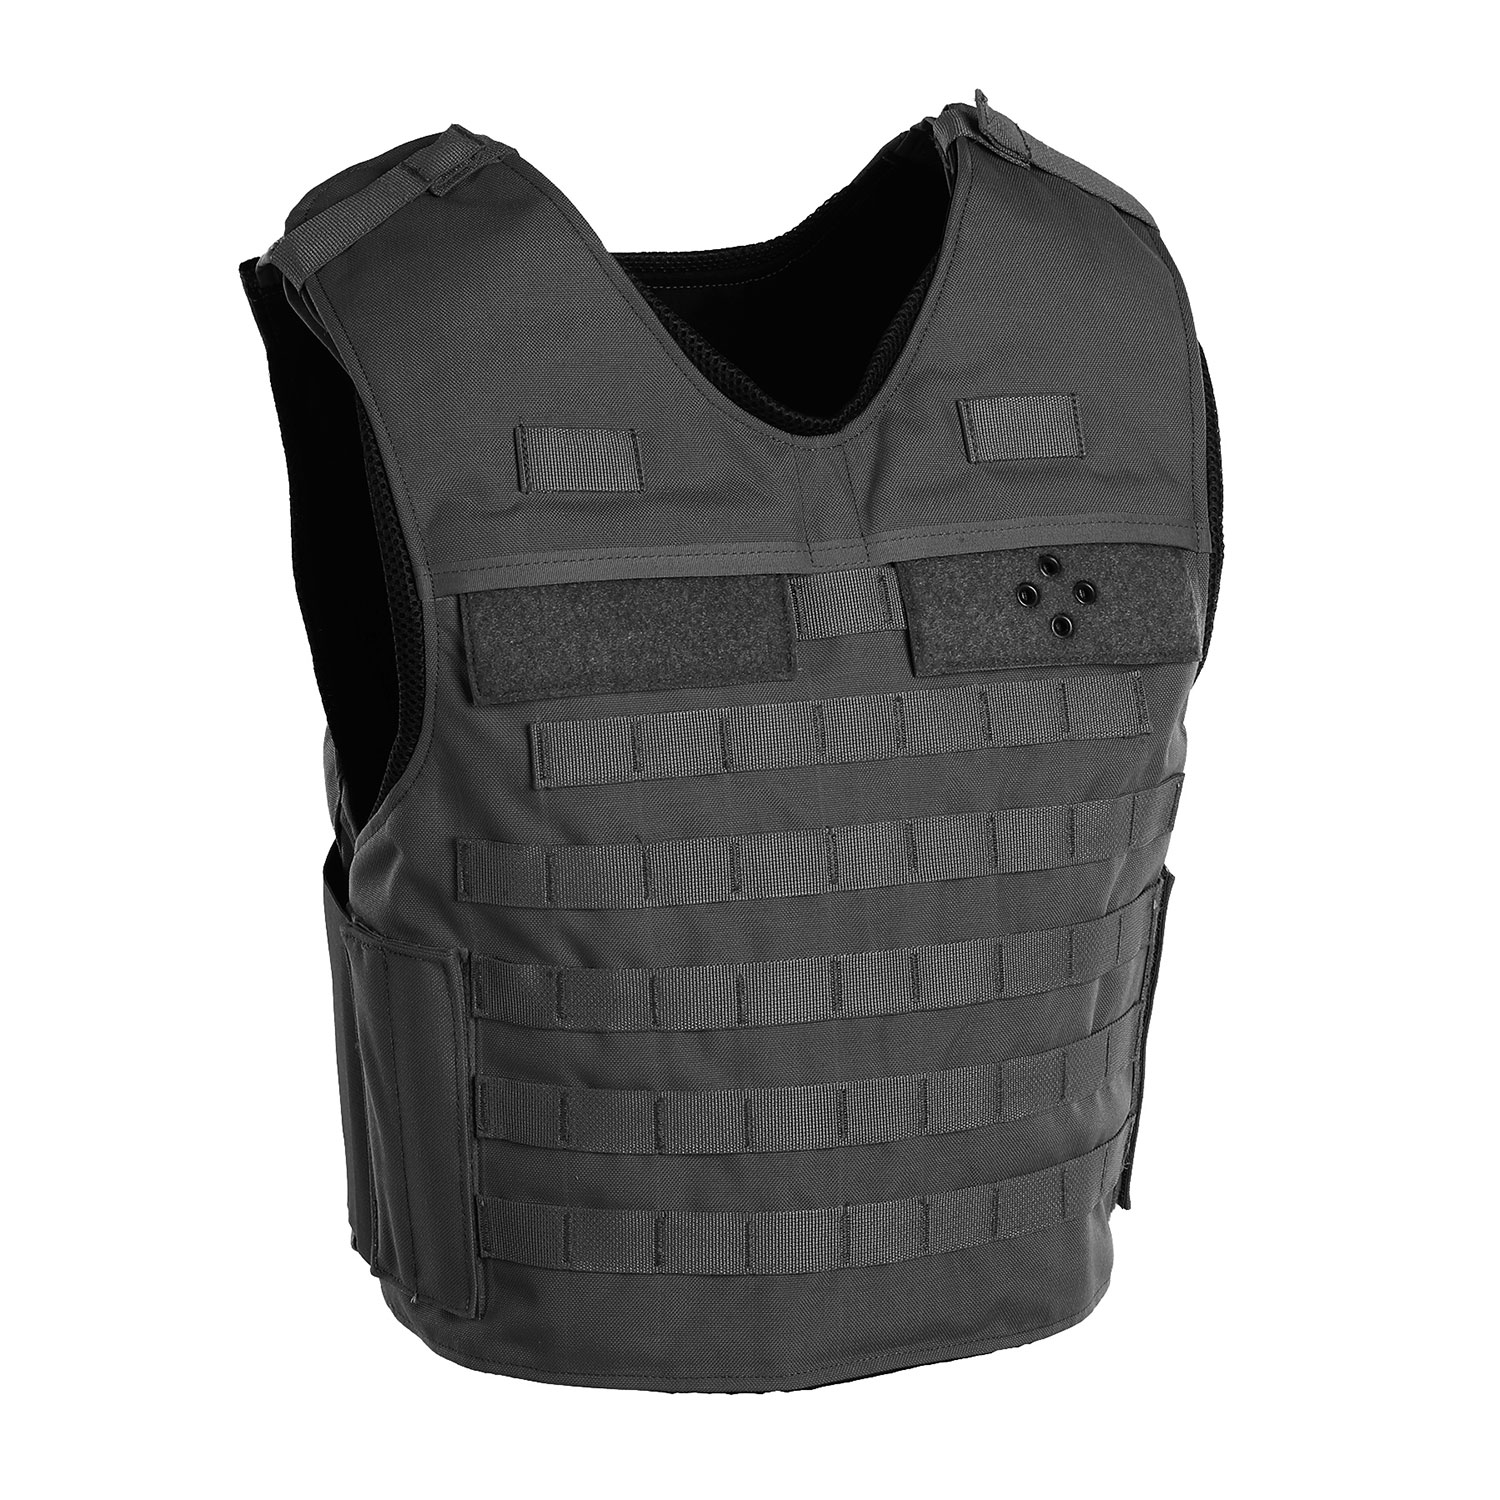 Second Chance External Outer Carrier with MOLLE